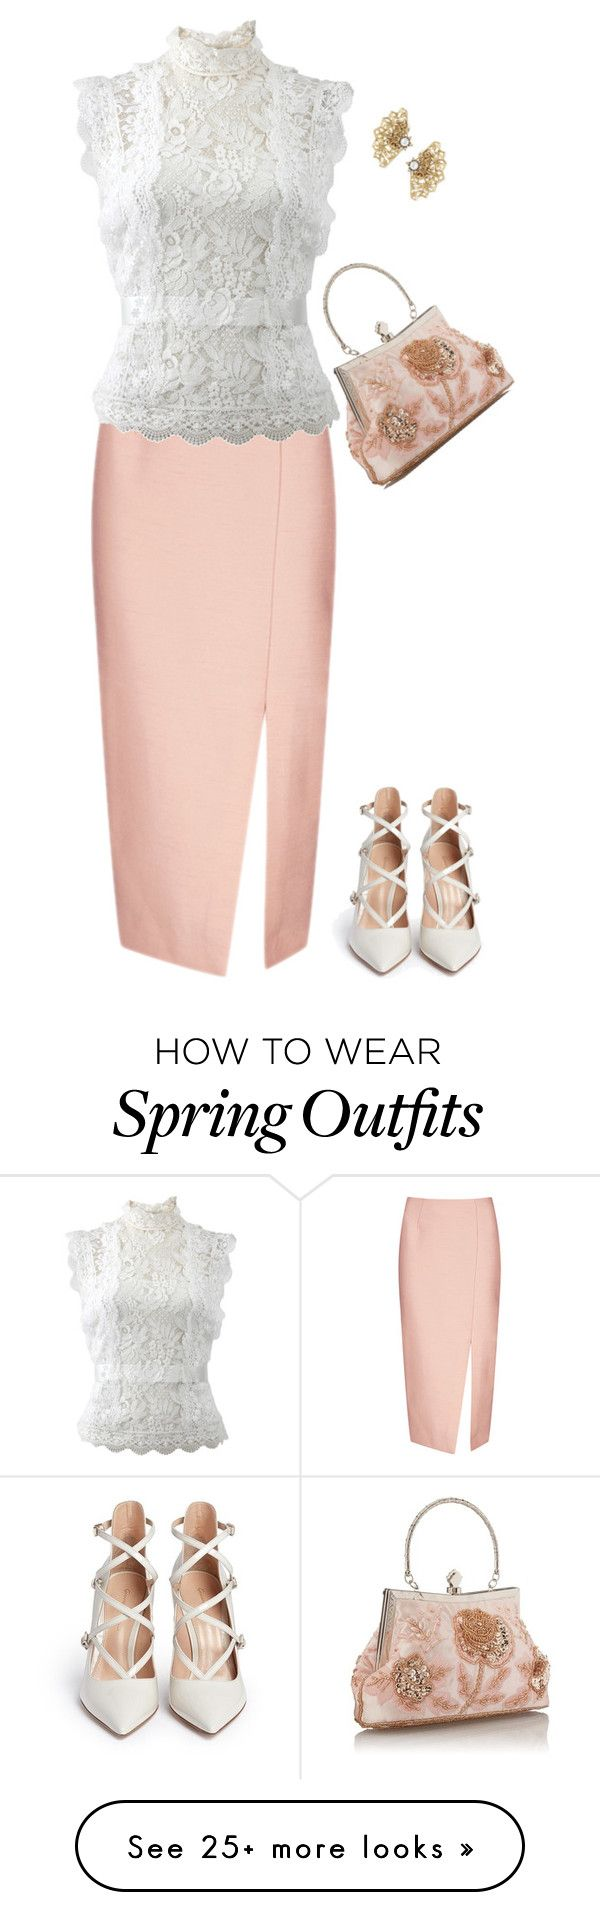 """Easter"" by mk-style on Polyvore featuring C/MEO COLLECTIVE, Oscar de la Renta and Gianvito Rossi"